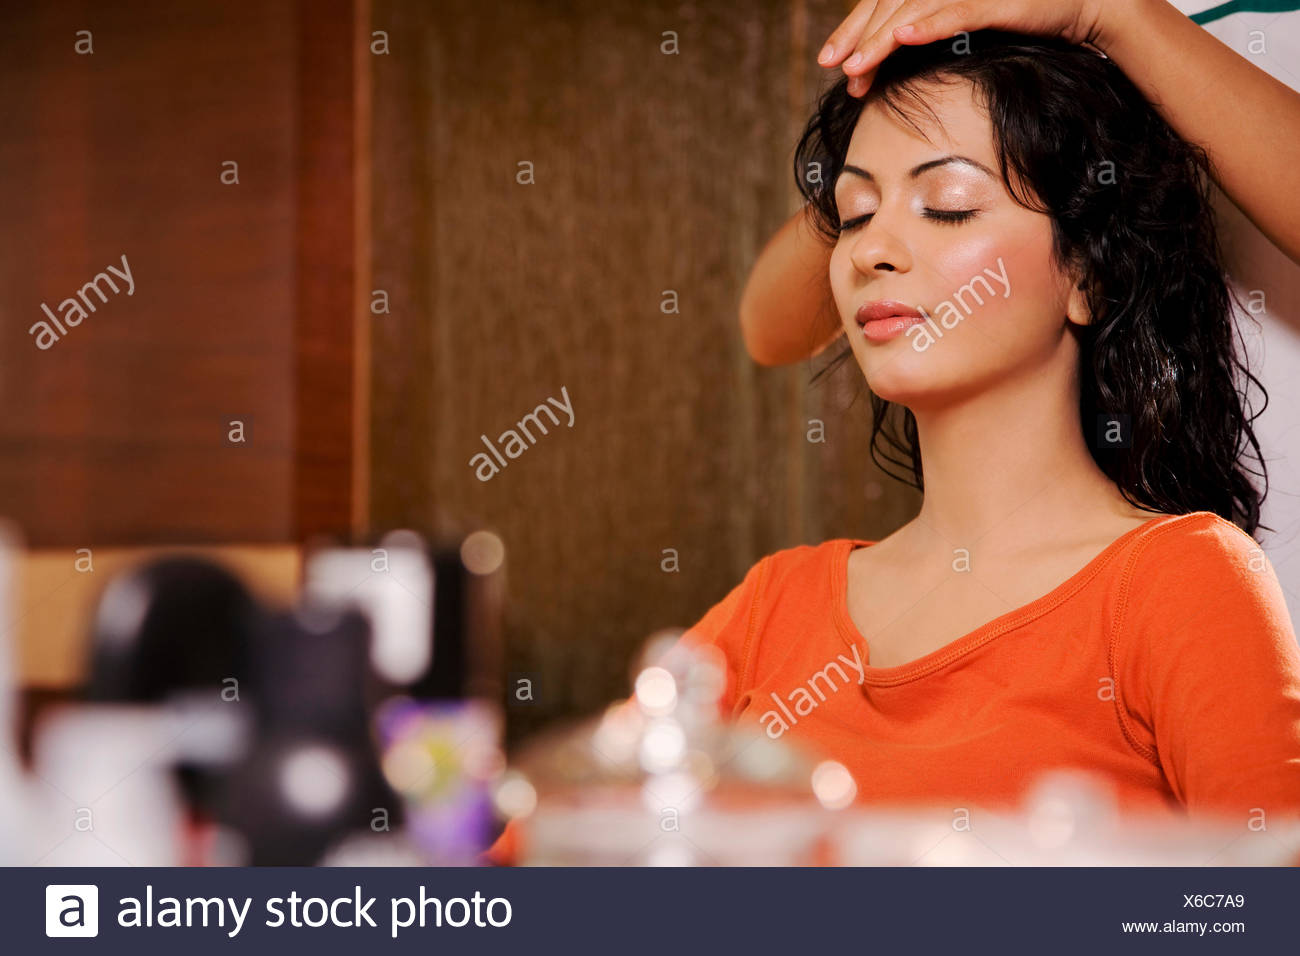 Asian Massage Parlour Stock Photos  Asian Massage Parlour Stock Images - Alamy-3090